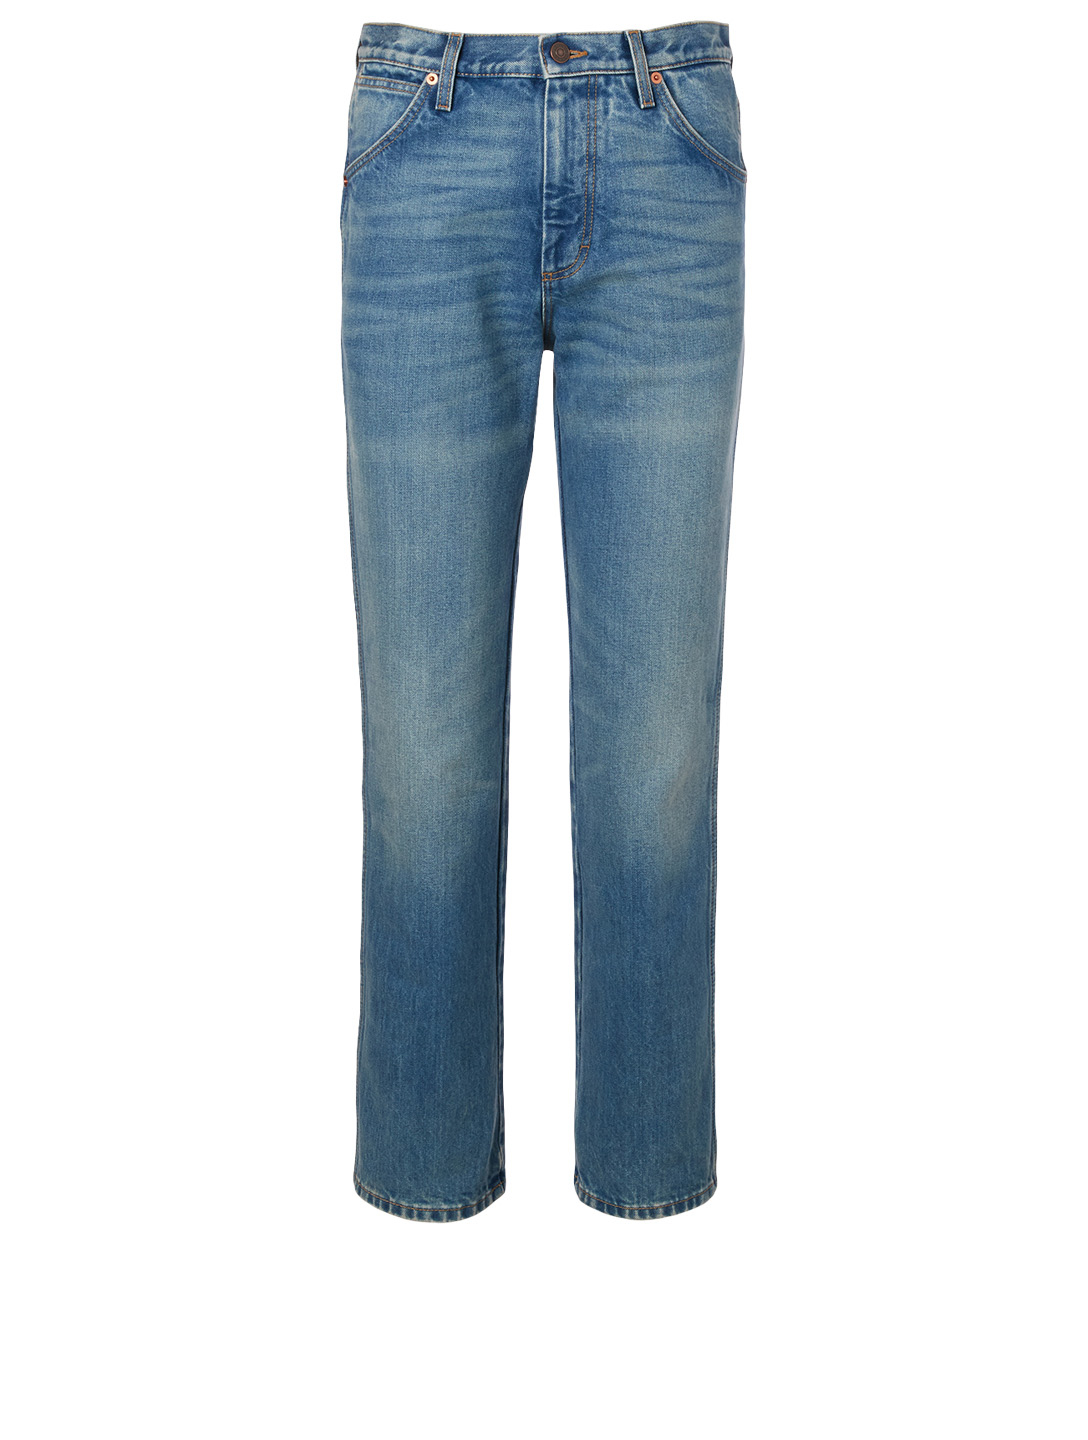 GUCCI Marble Washed Jeans Men's Blue